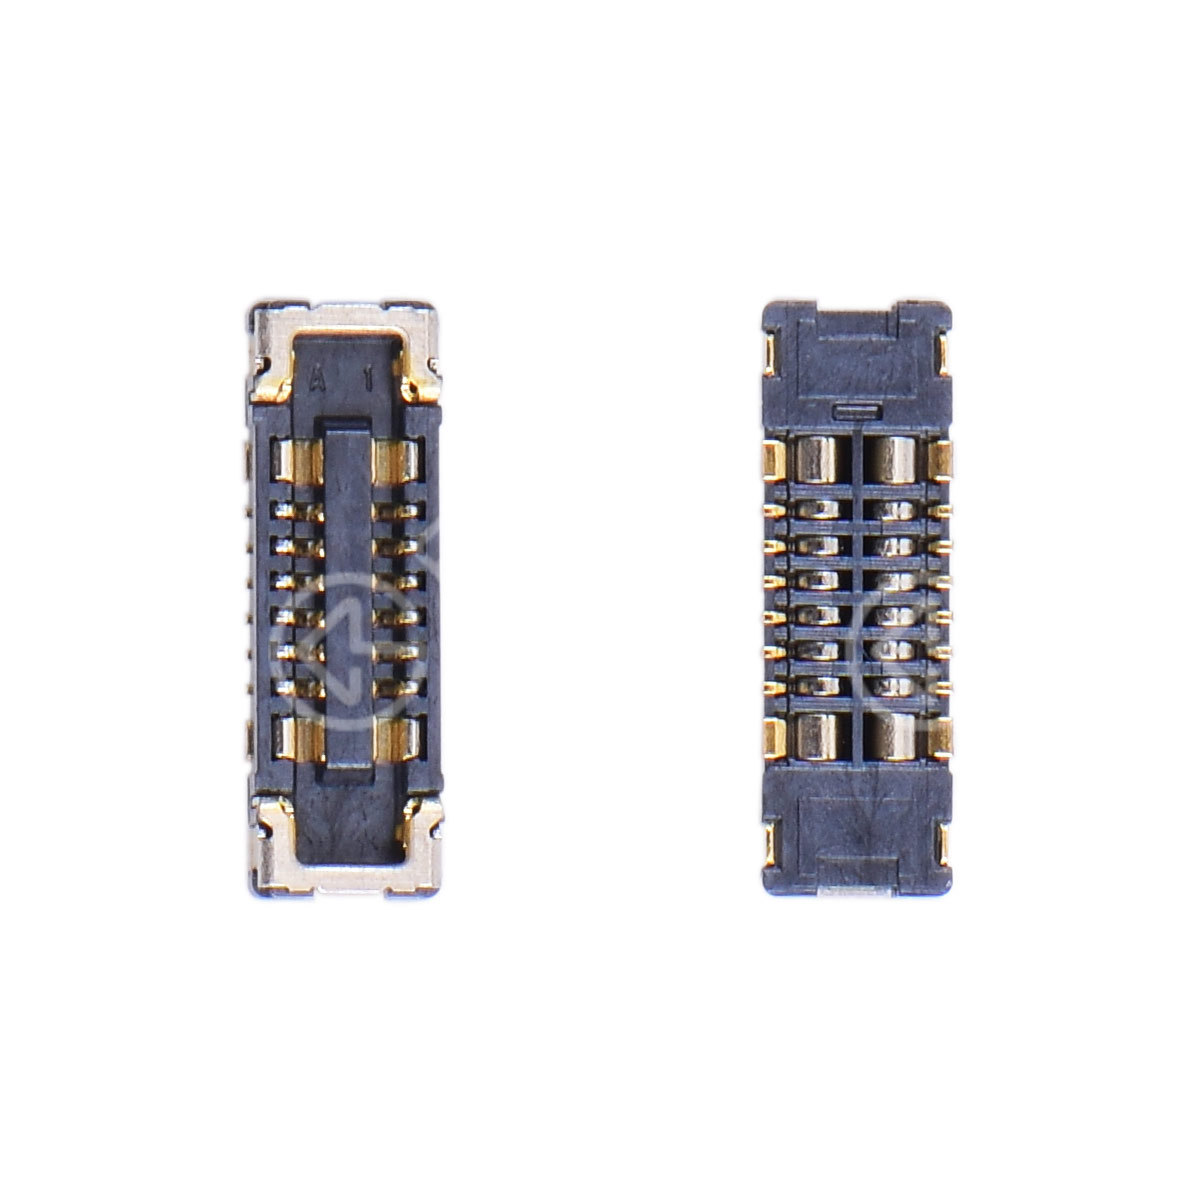 Power/Strobe Connector (J7700)  Replacement For iPhone 11